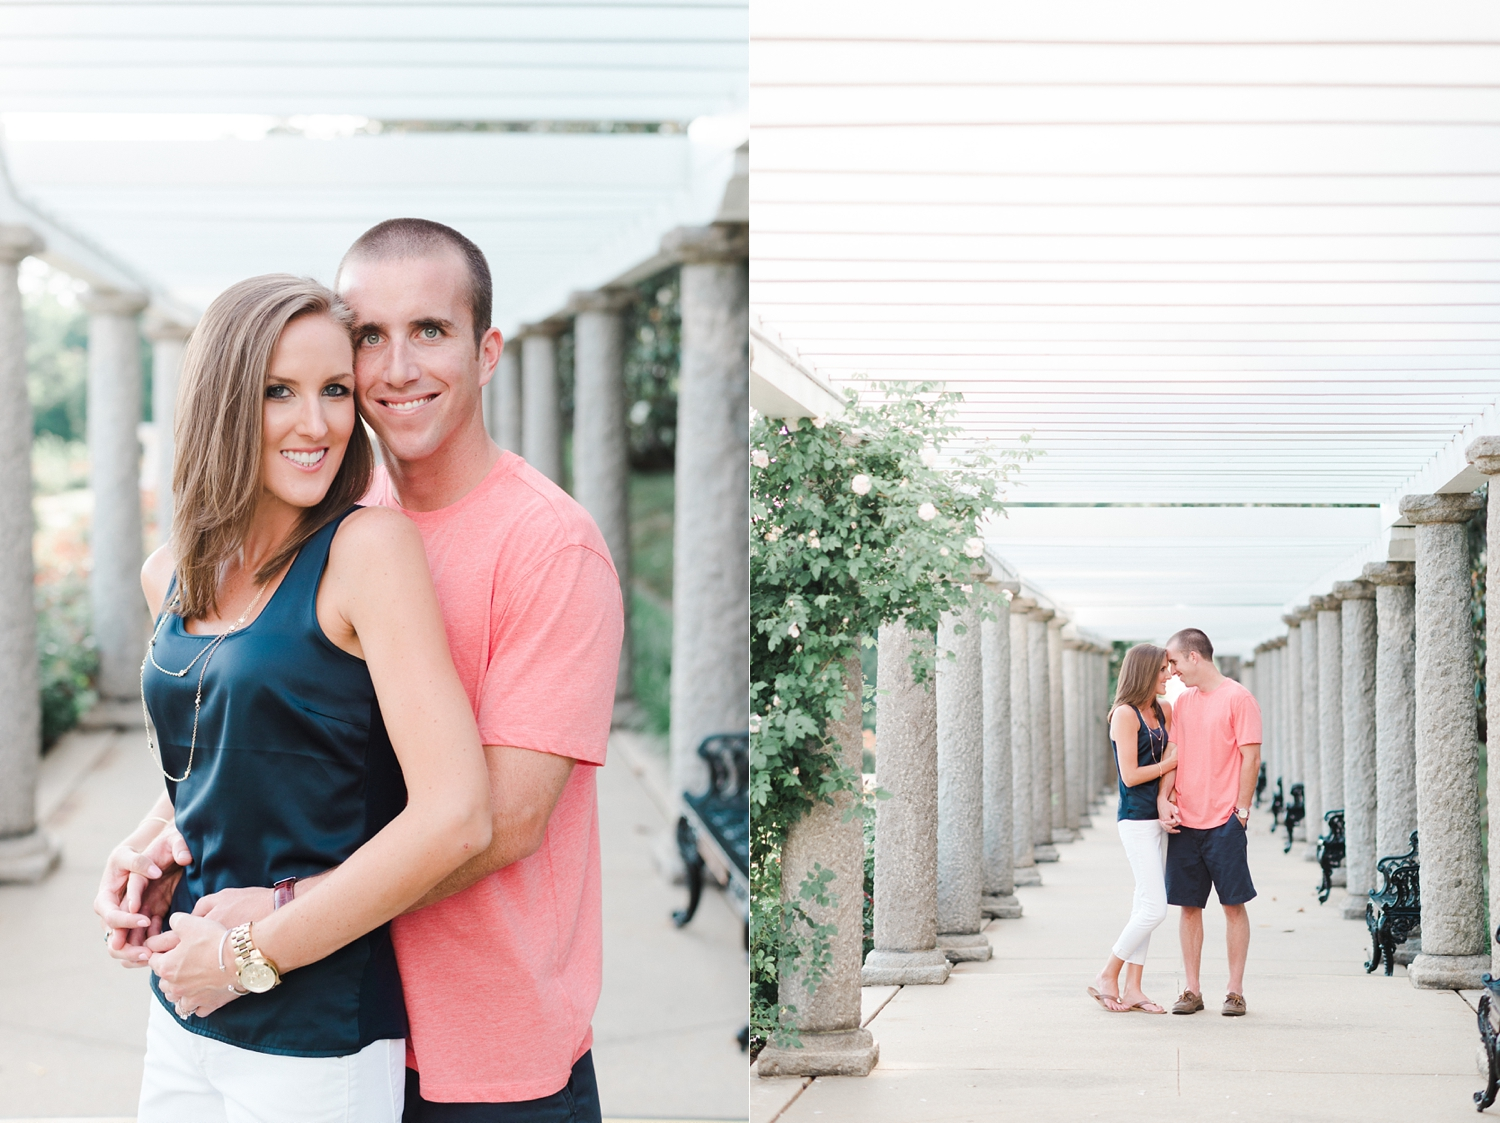 Maymon_Park_richmond_engagement_photography_0008.jpg